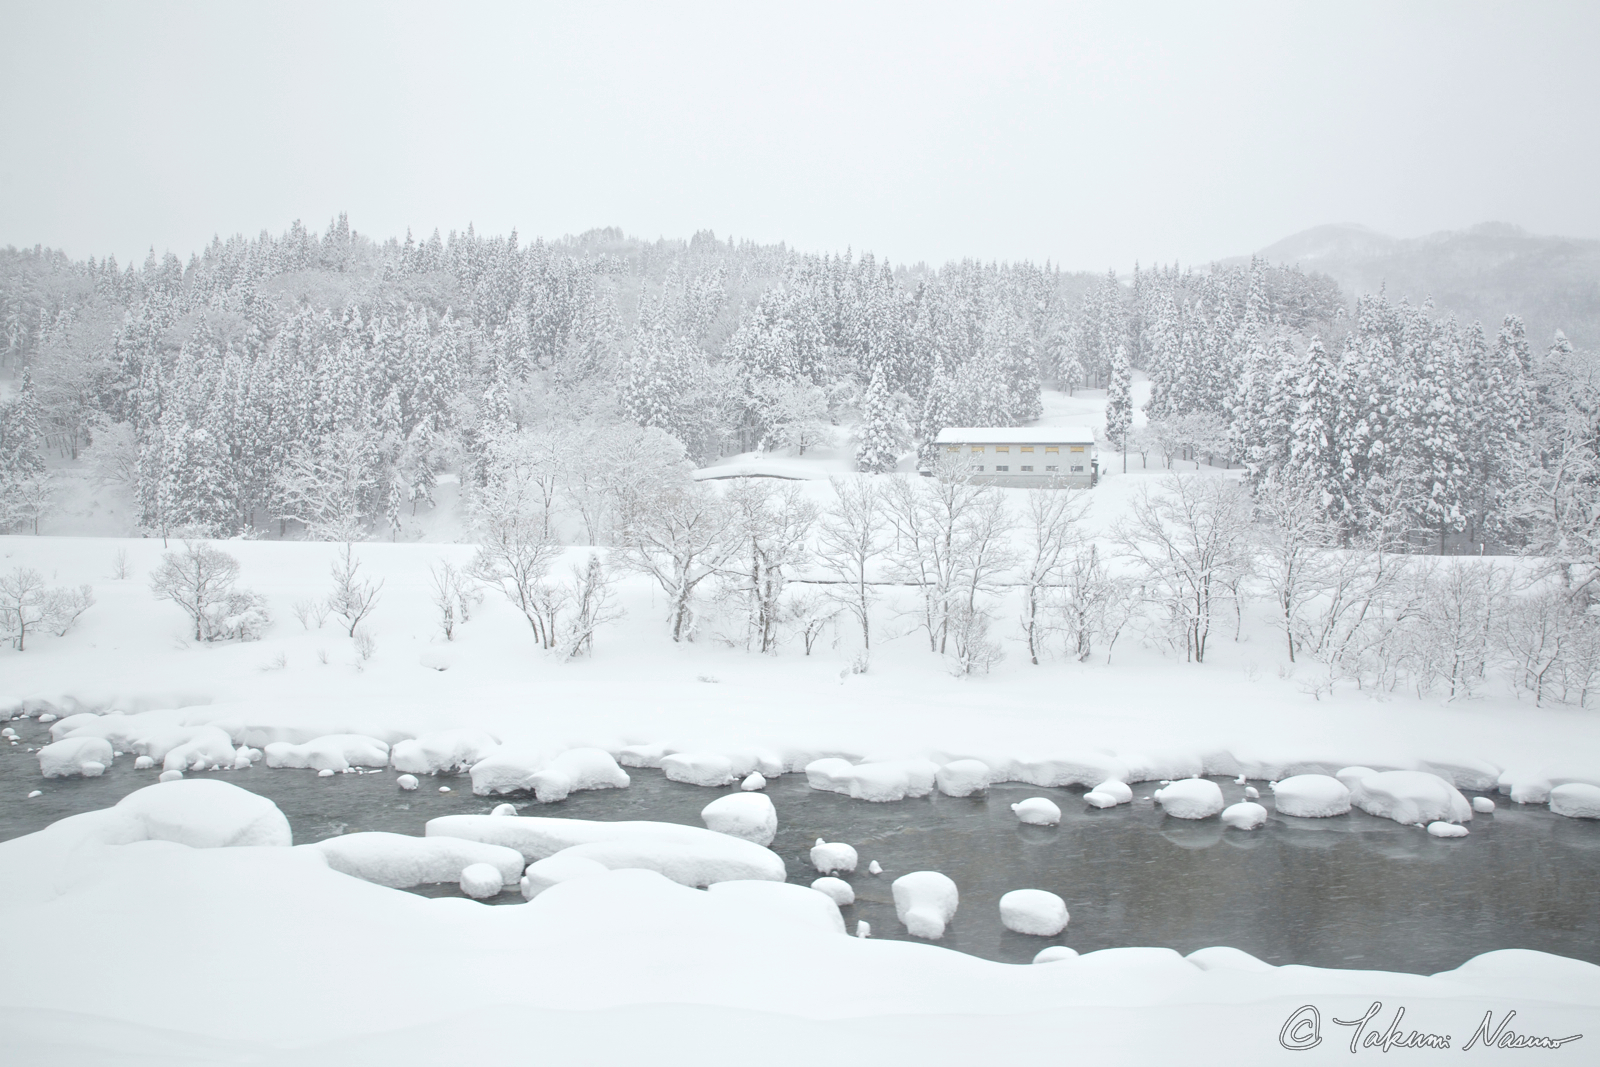 Otari Village - Snowy Hime River and a House